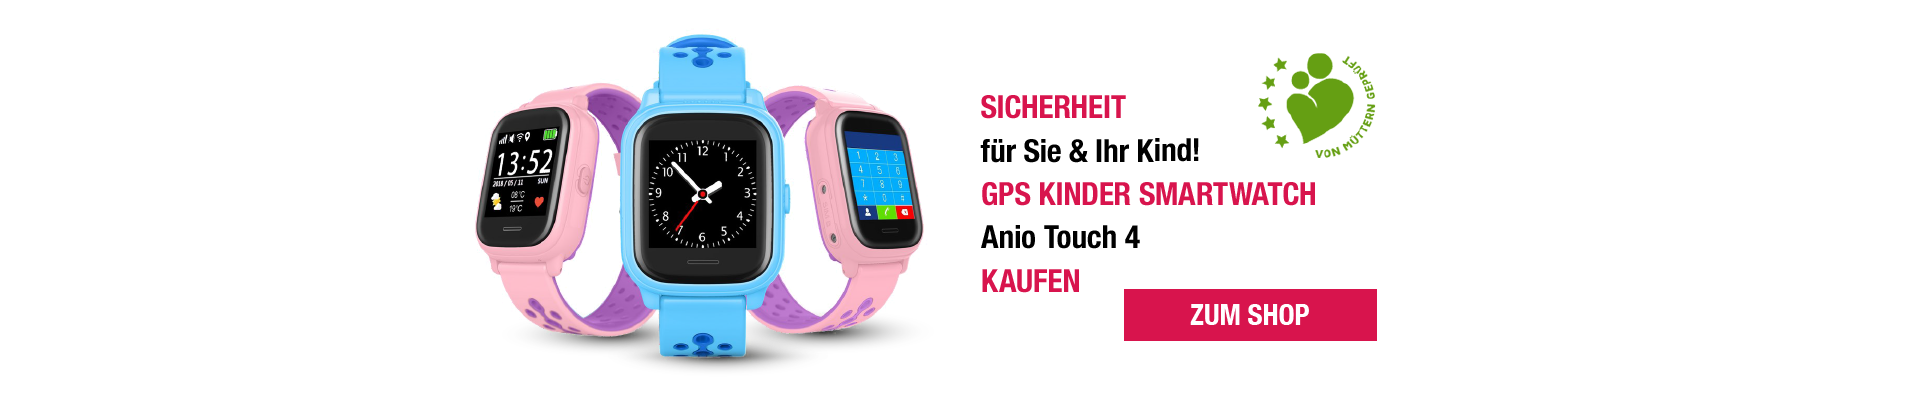 Kinder Smartwatch - Anio 4 Touch